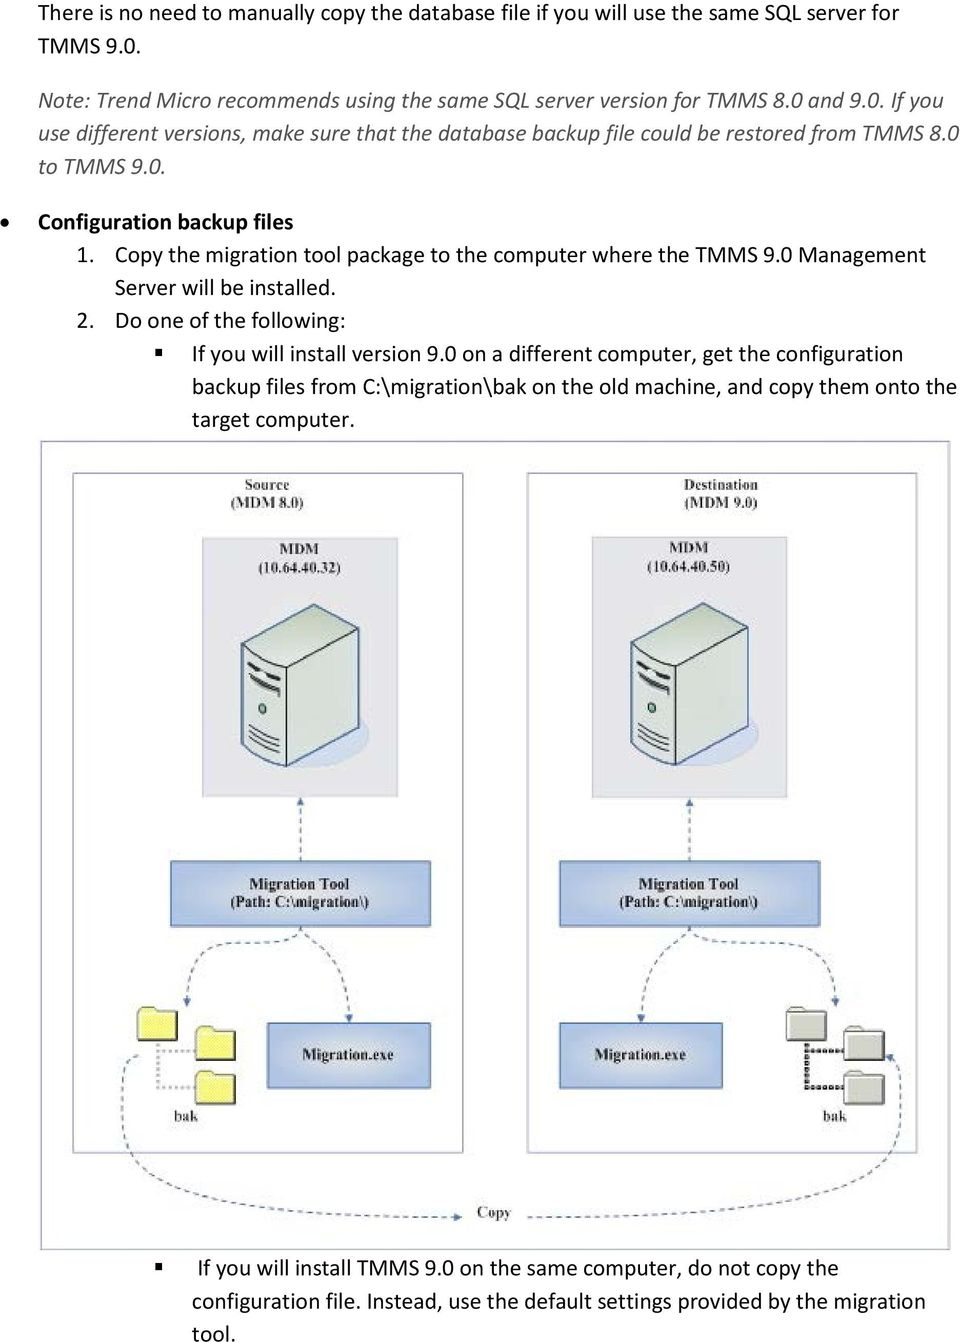 0. Configuration backup files 1. Copy the migration tool package to the computer where the TMMS 9.0 Management Server will be installed. 2. Do one of the following: If you will install version 9.